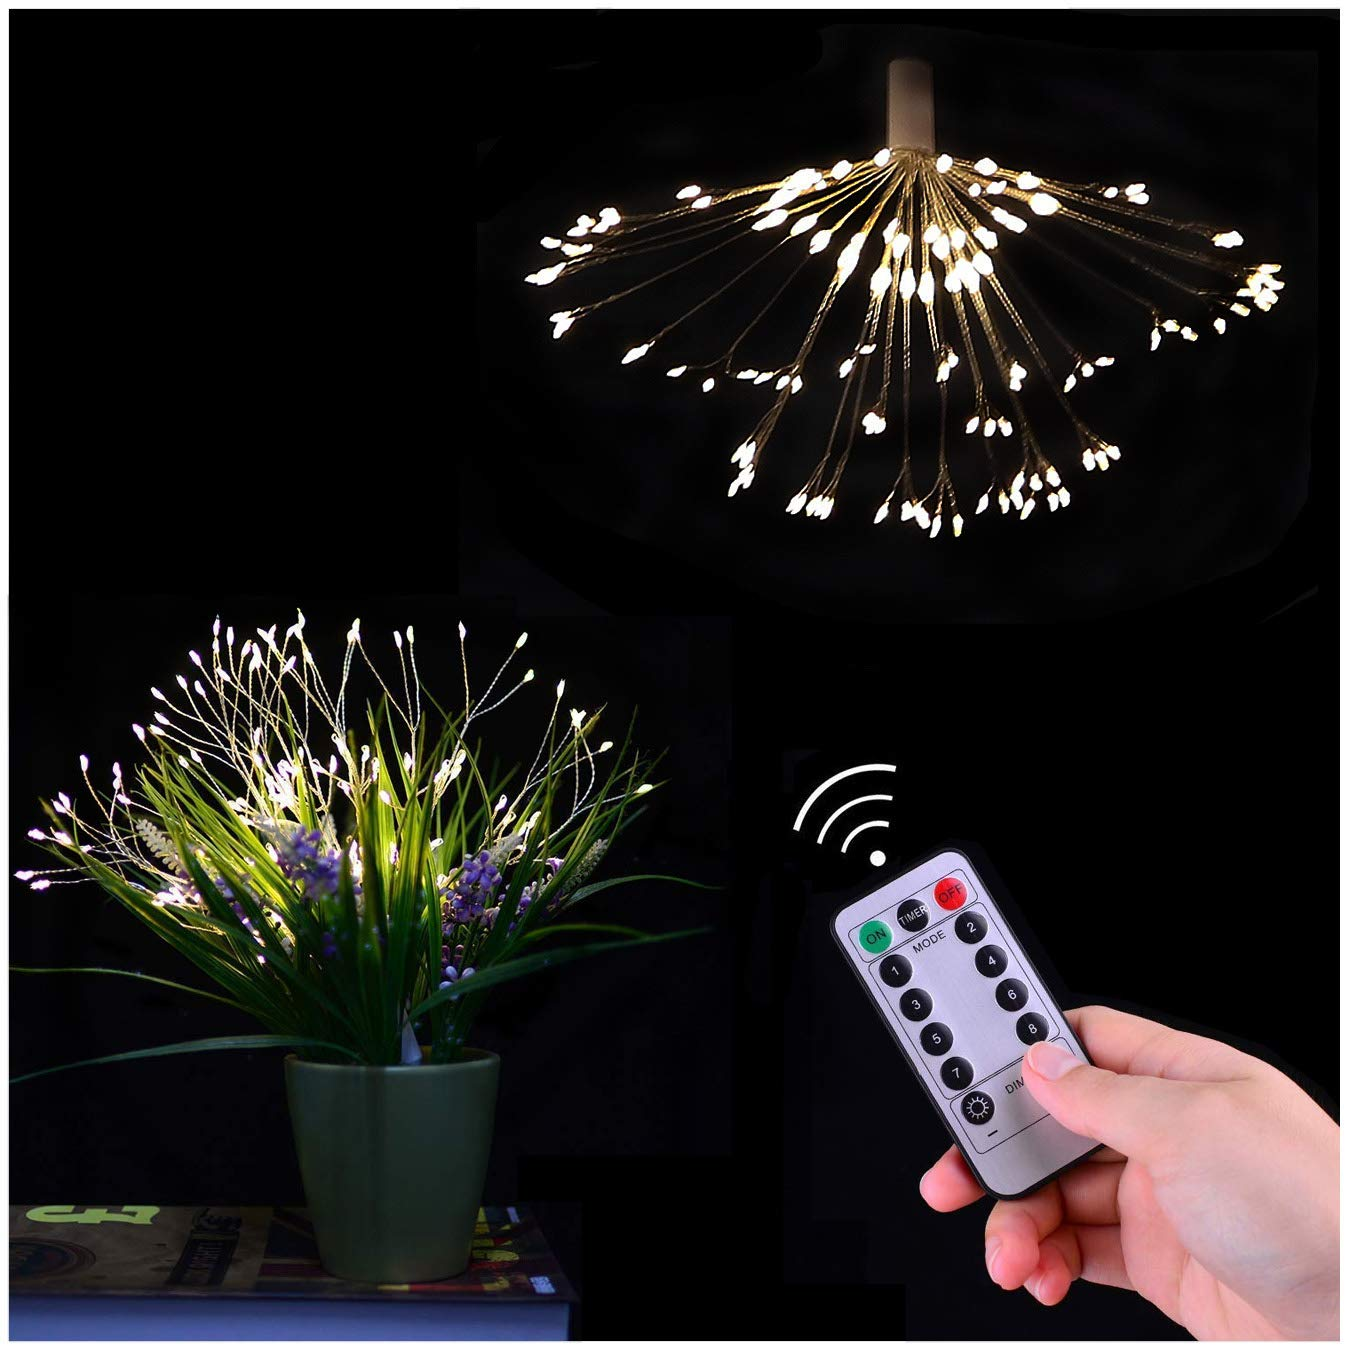 Prosense LED Branch String Lights, 198 LEDs 8 Modes Plug in Decorative Branch Fairy Lights for Parlor Bedroom Wedding Birthday Party Christmas Tree Deco (Warm White)